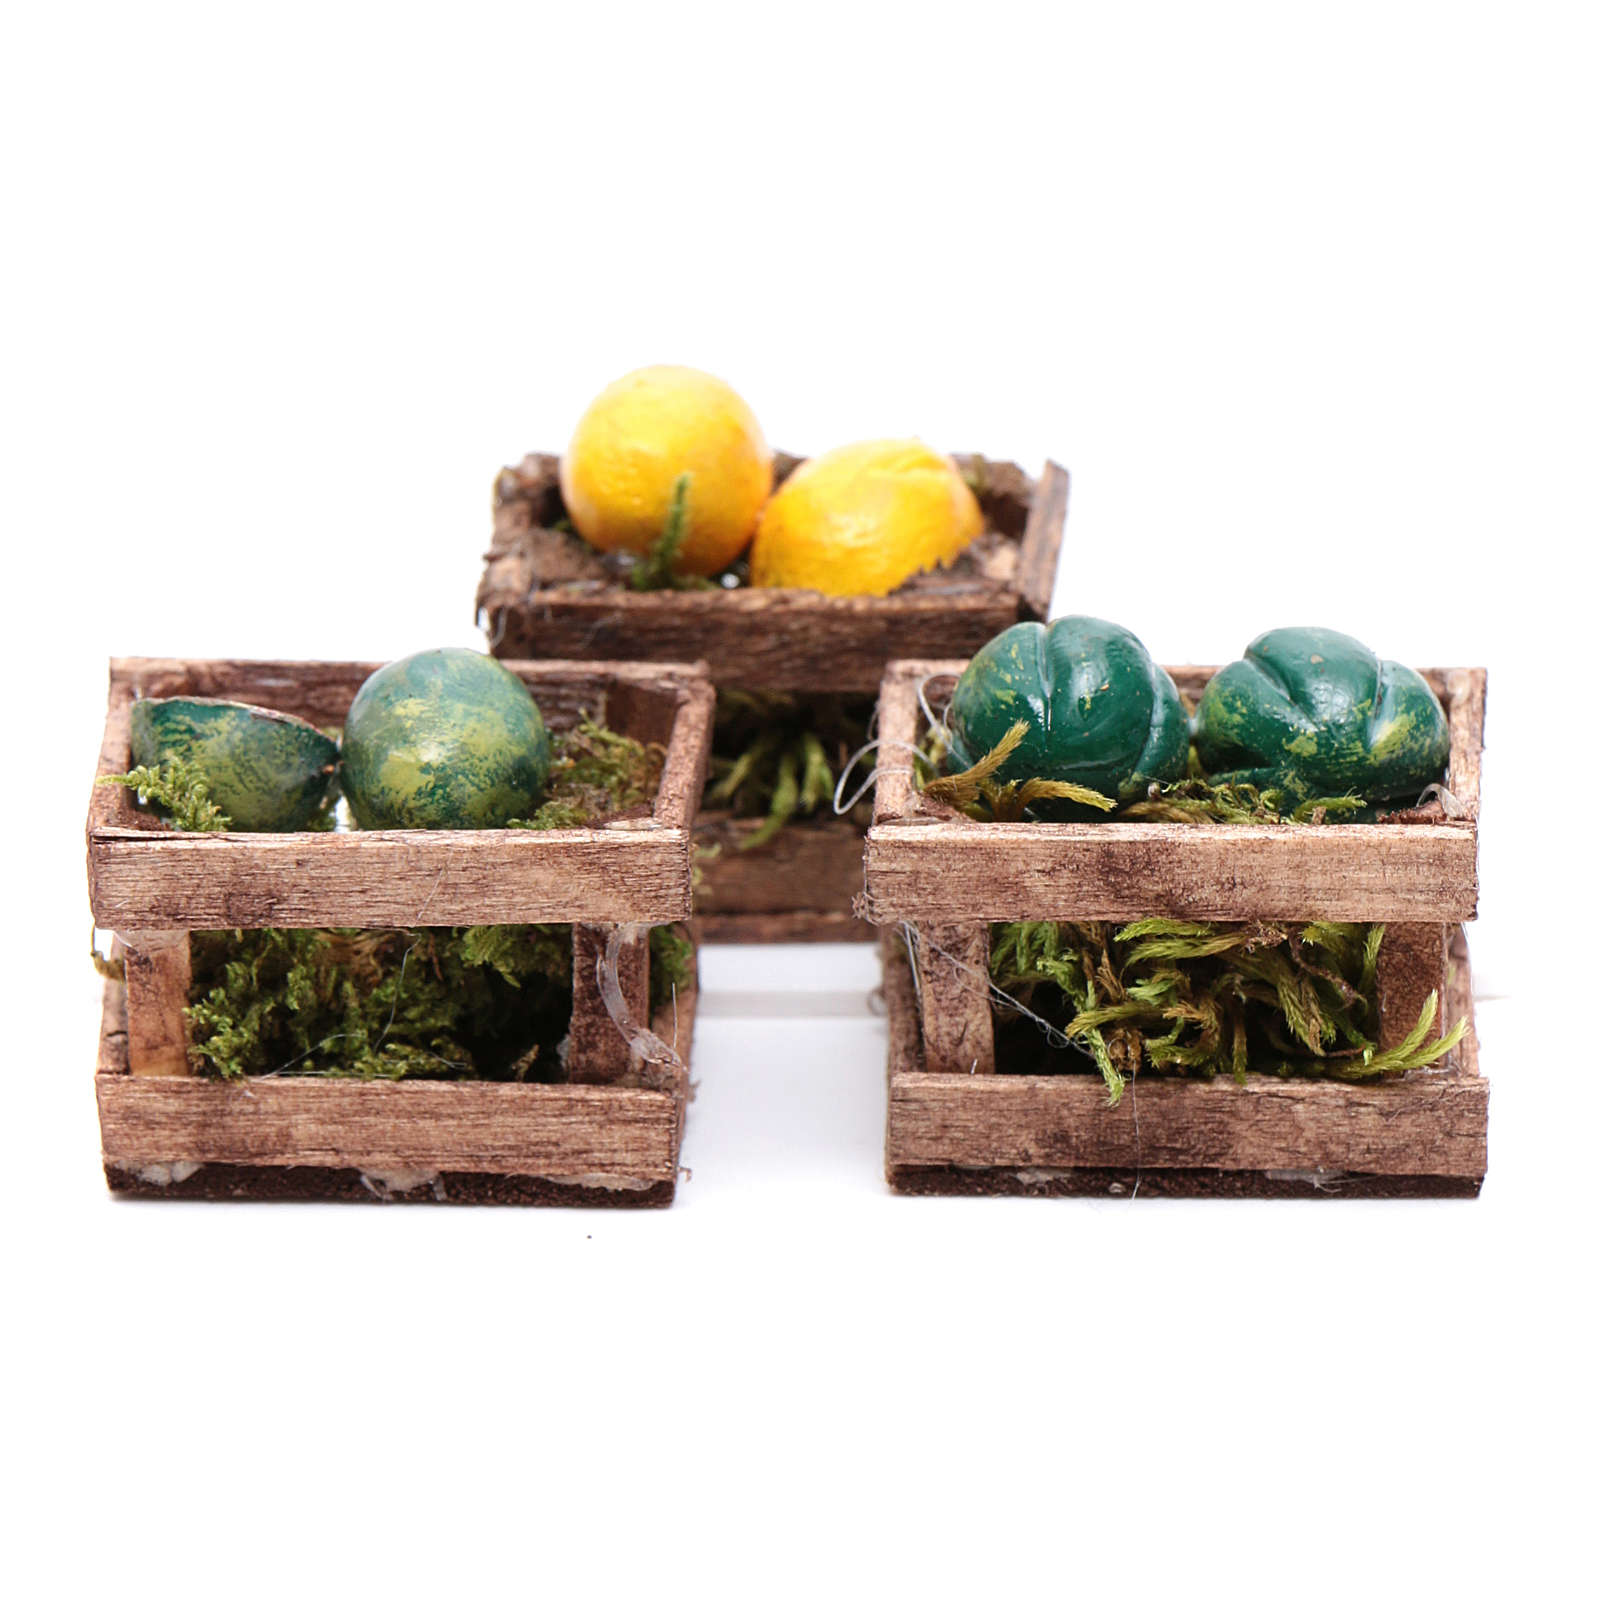 Boxes with melons and watermelons set of 3 pieces 4